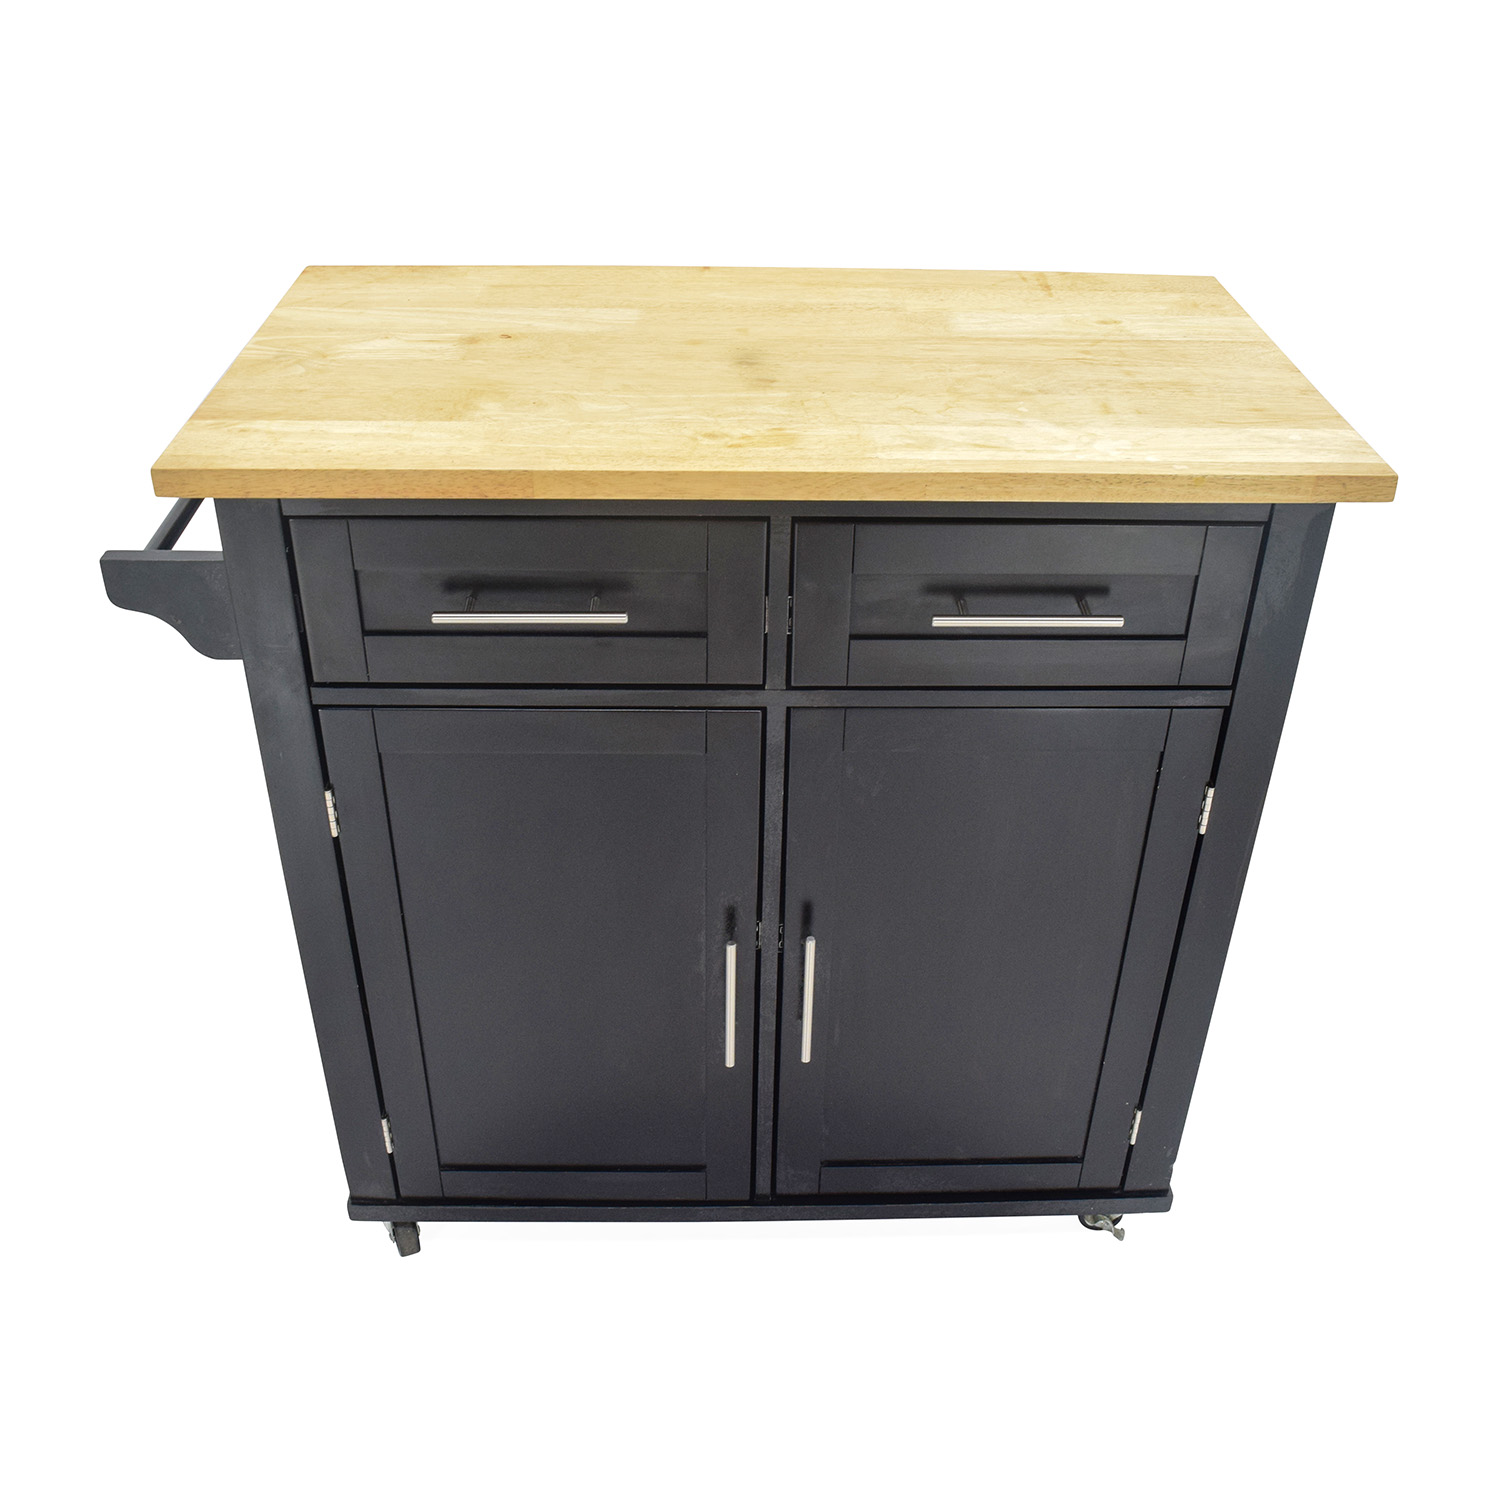 OFF Crate And Barrel Crate And Barrel Kitchen Island Tables - Kitchen island crate and barrel